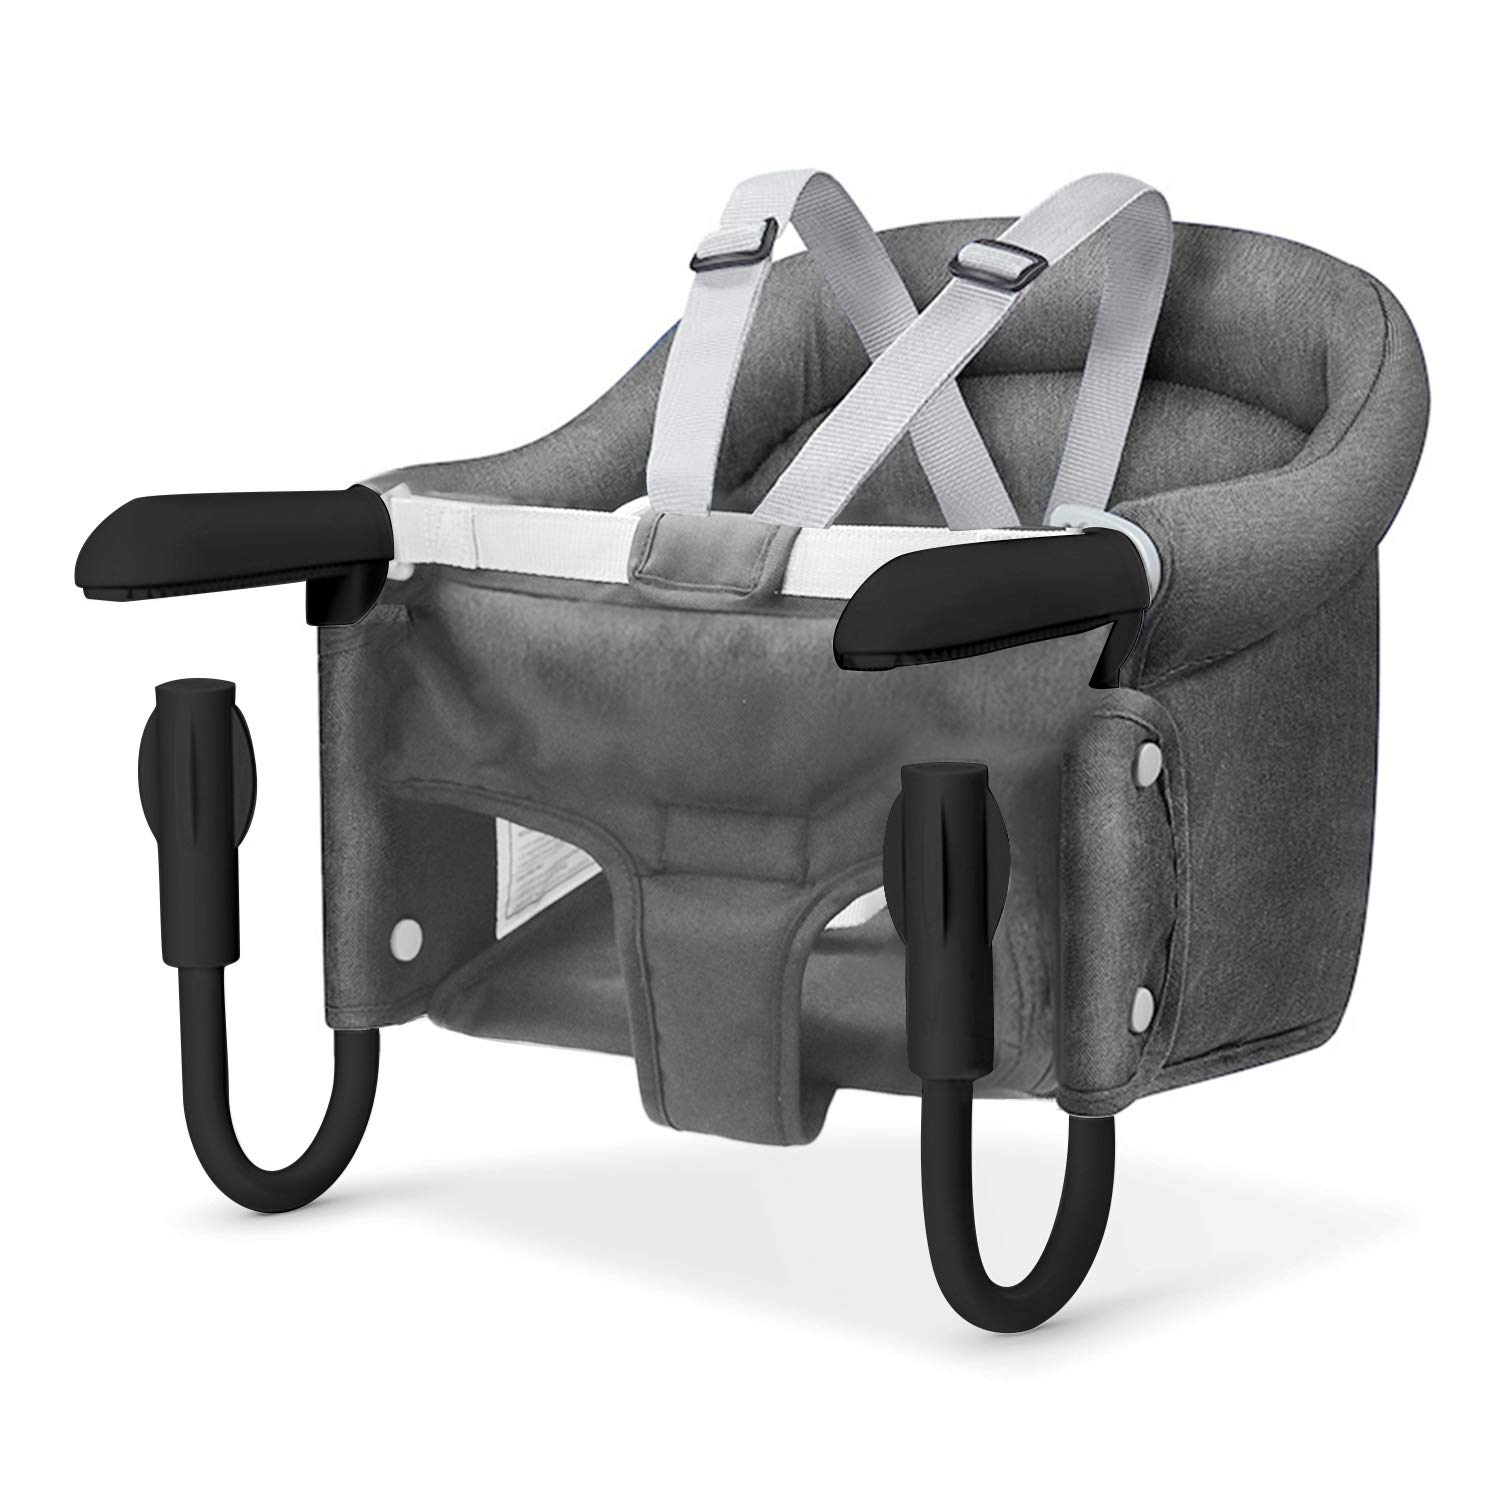 Hook On Chair, Safe and High Load Design, Fold-Flat Storage and Tight Fixing Clip on Table High Chair, Machine-Washable and Avoid Cracking Fabric, Removable Seat Cushion, Fast Table Chair (Grey)